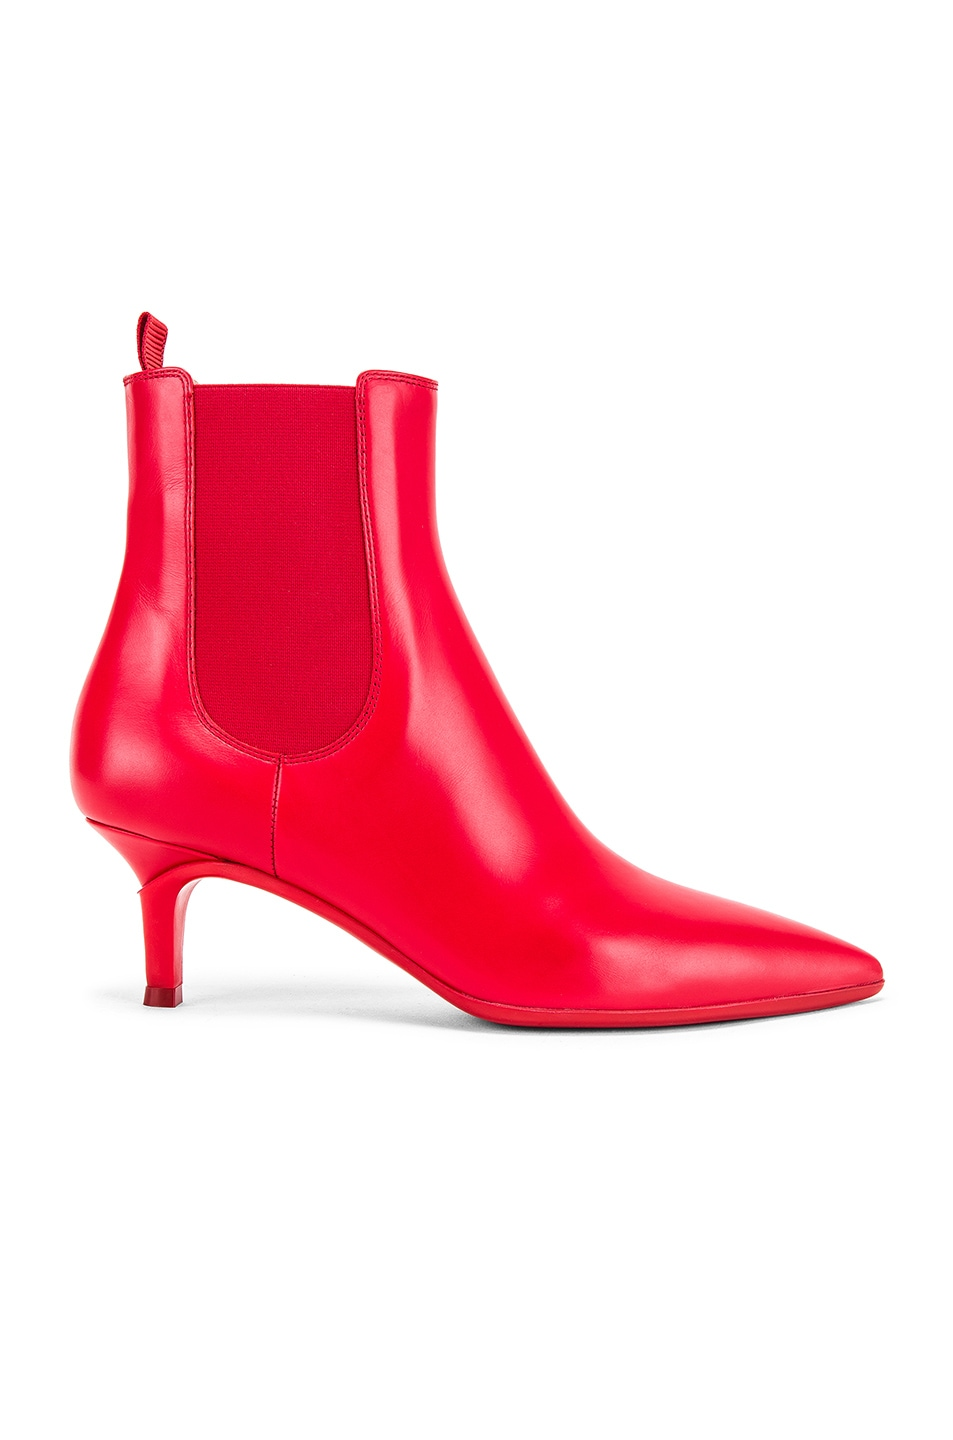 Image 1 of Gianvito Rossi Ankle Bootie in Tabasco Red